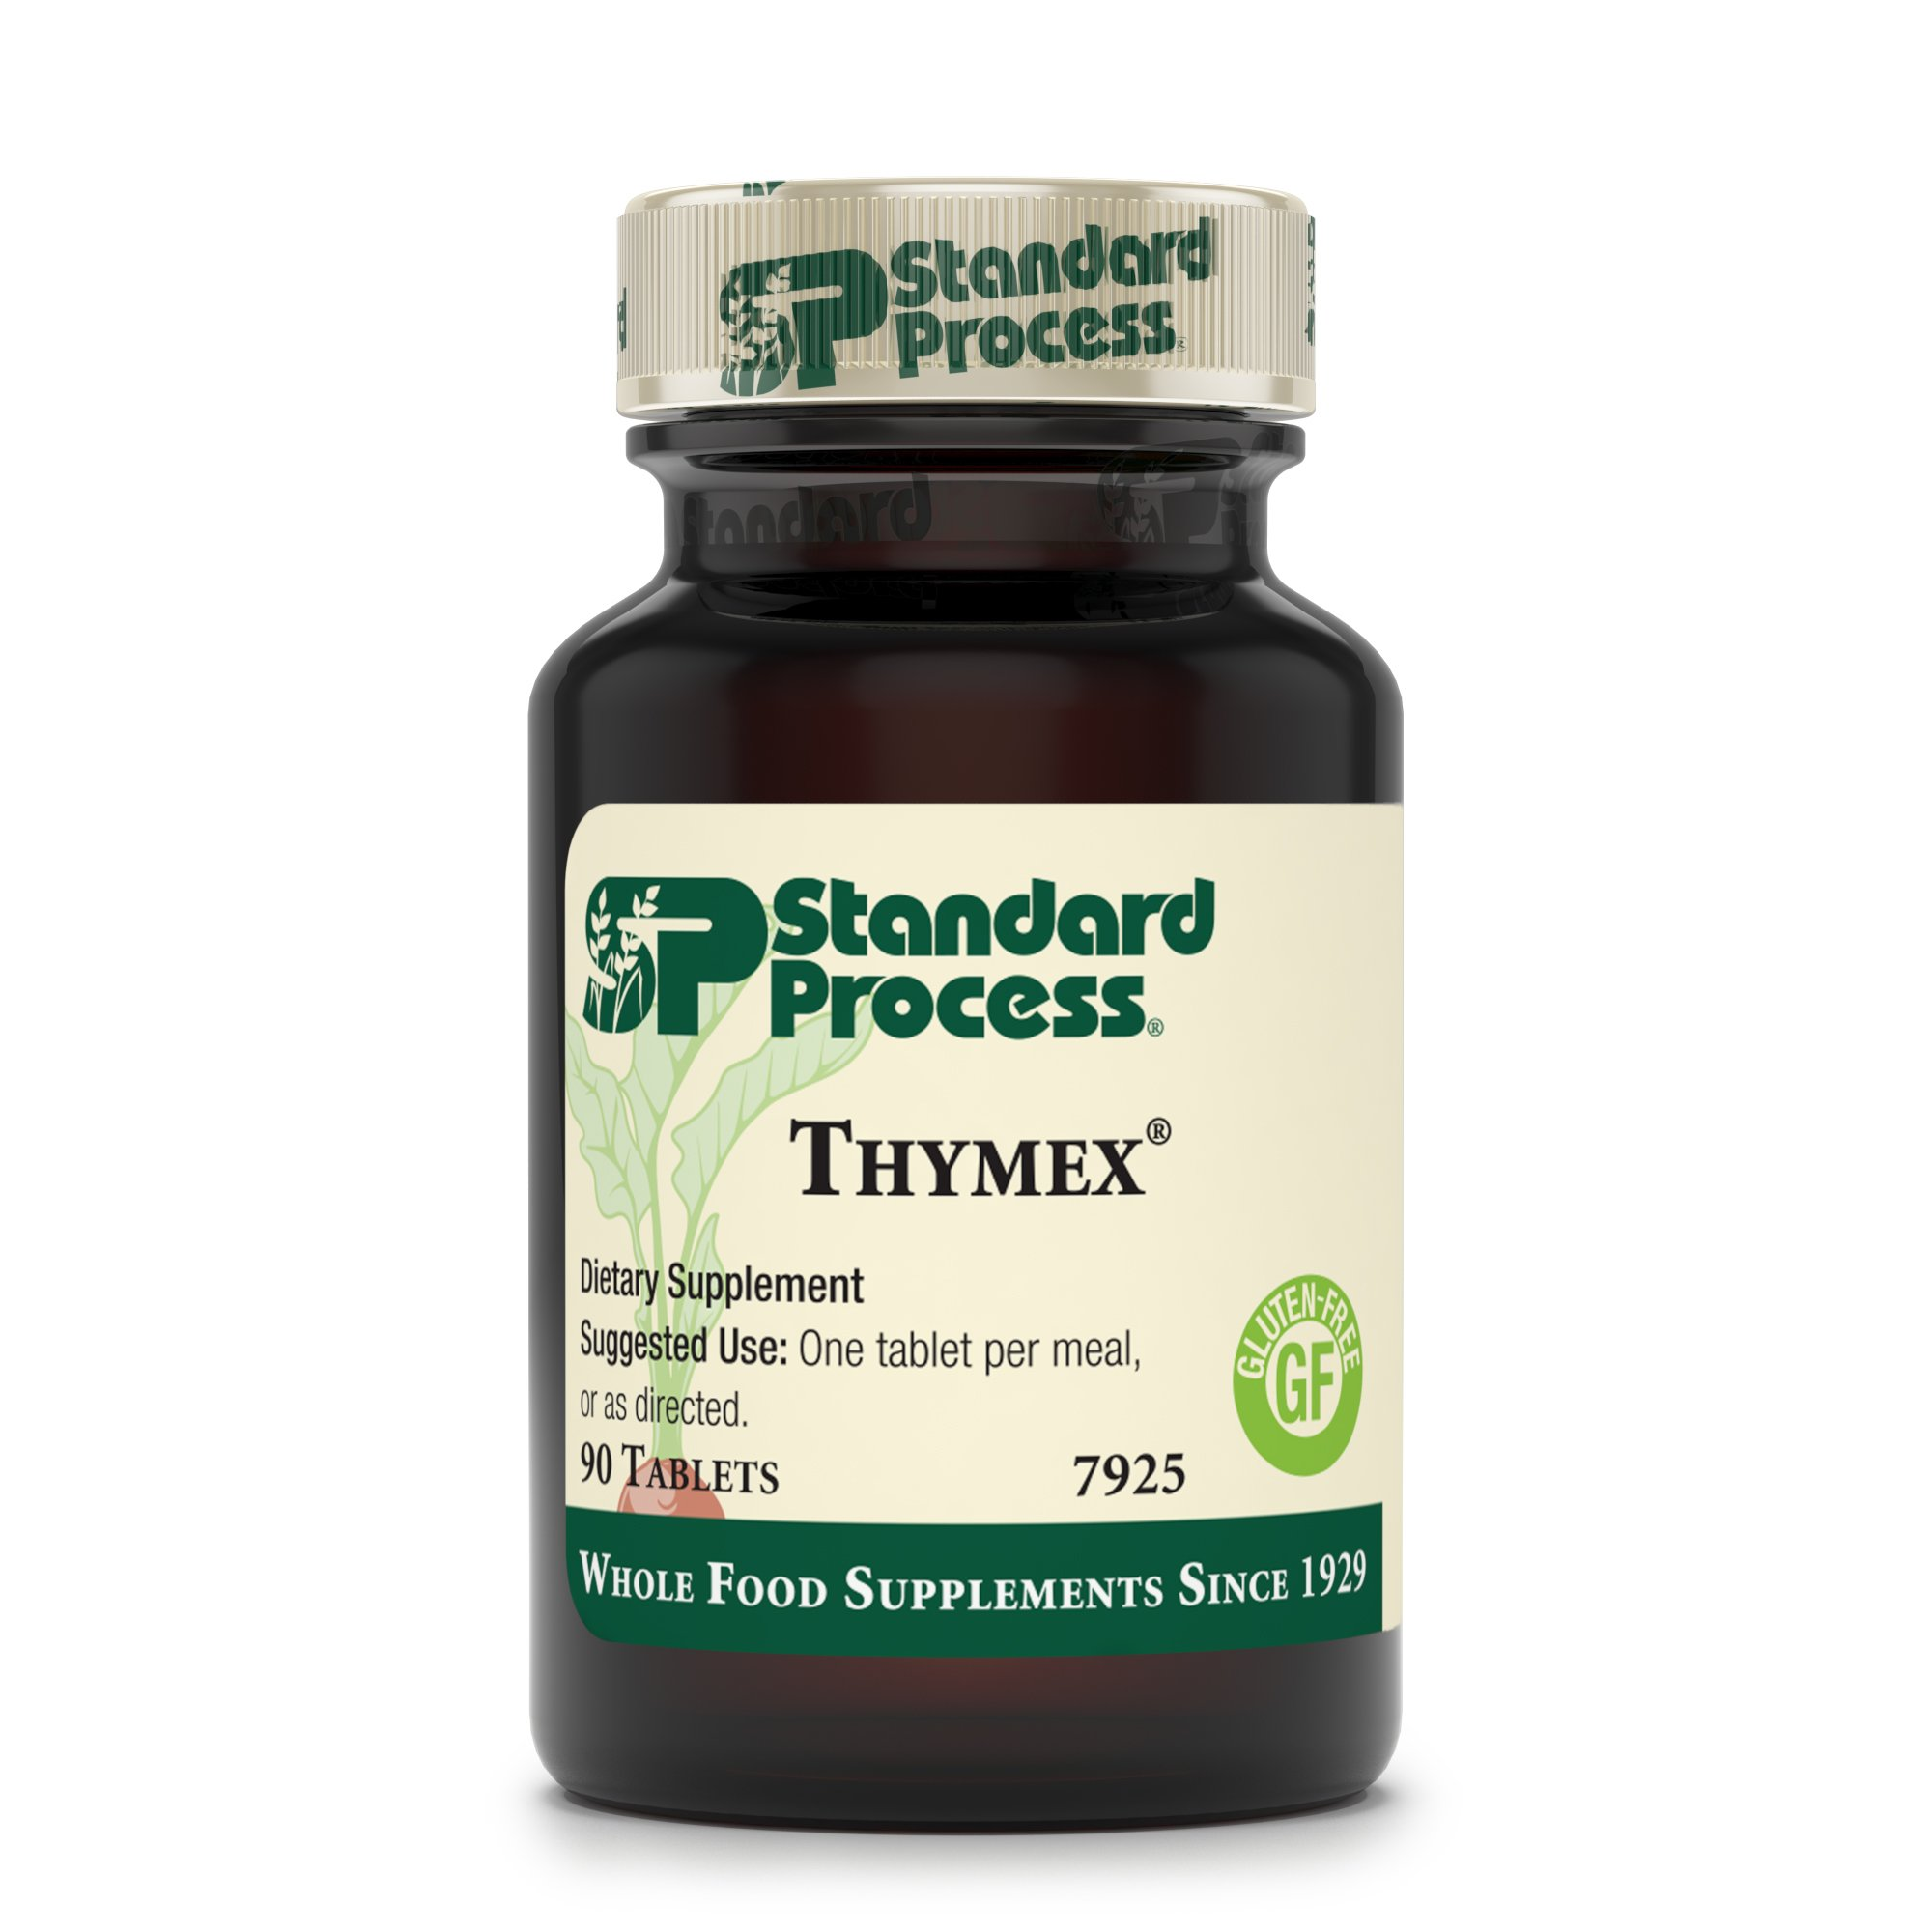 Standard Process - Thymex - Thymus Gland Support Supplement, Supports Immune System Health, Provides Antioxidant Vitamin C, Gluten Free - 90 Tablets by Standard Process (Image #2)